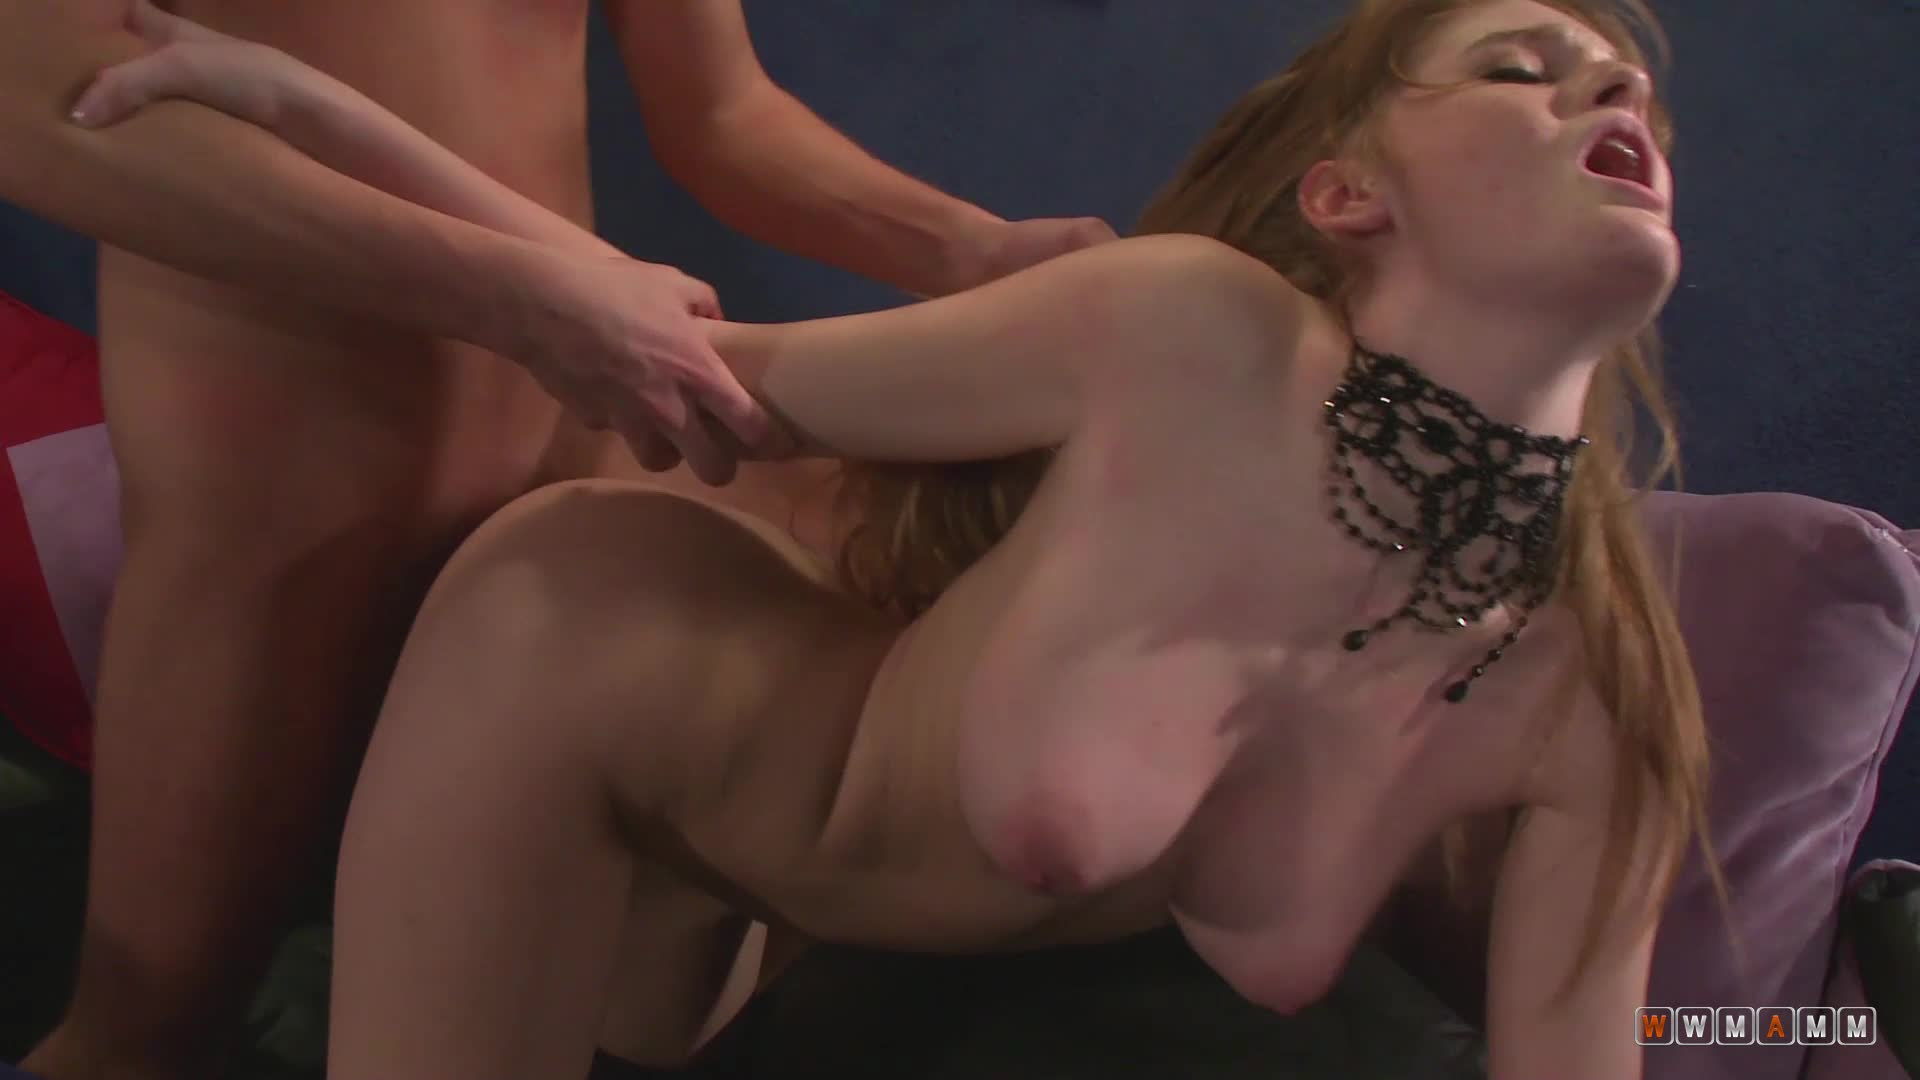 Playing Hard To Get But She Is Dying To Play With His Hard Cock